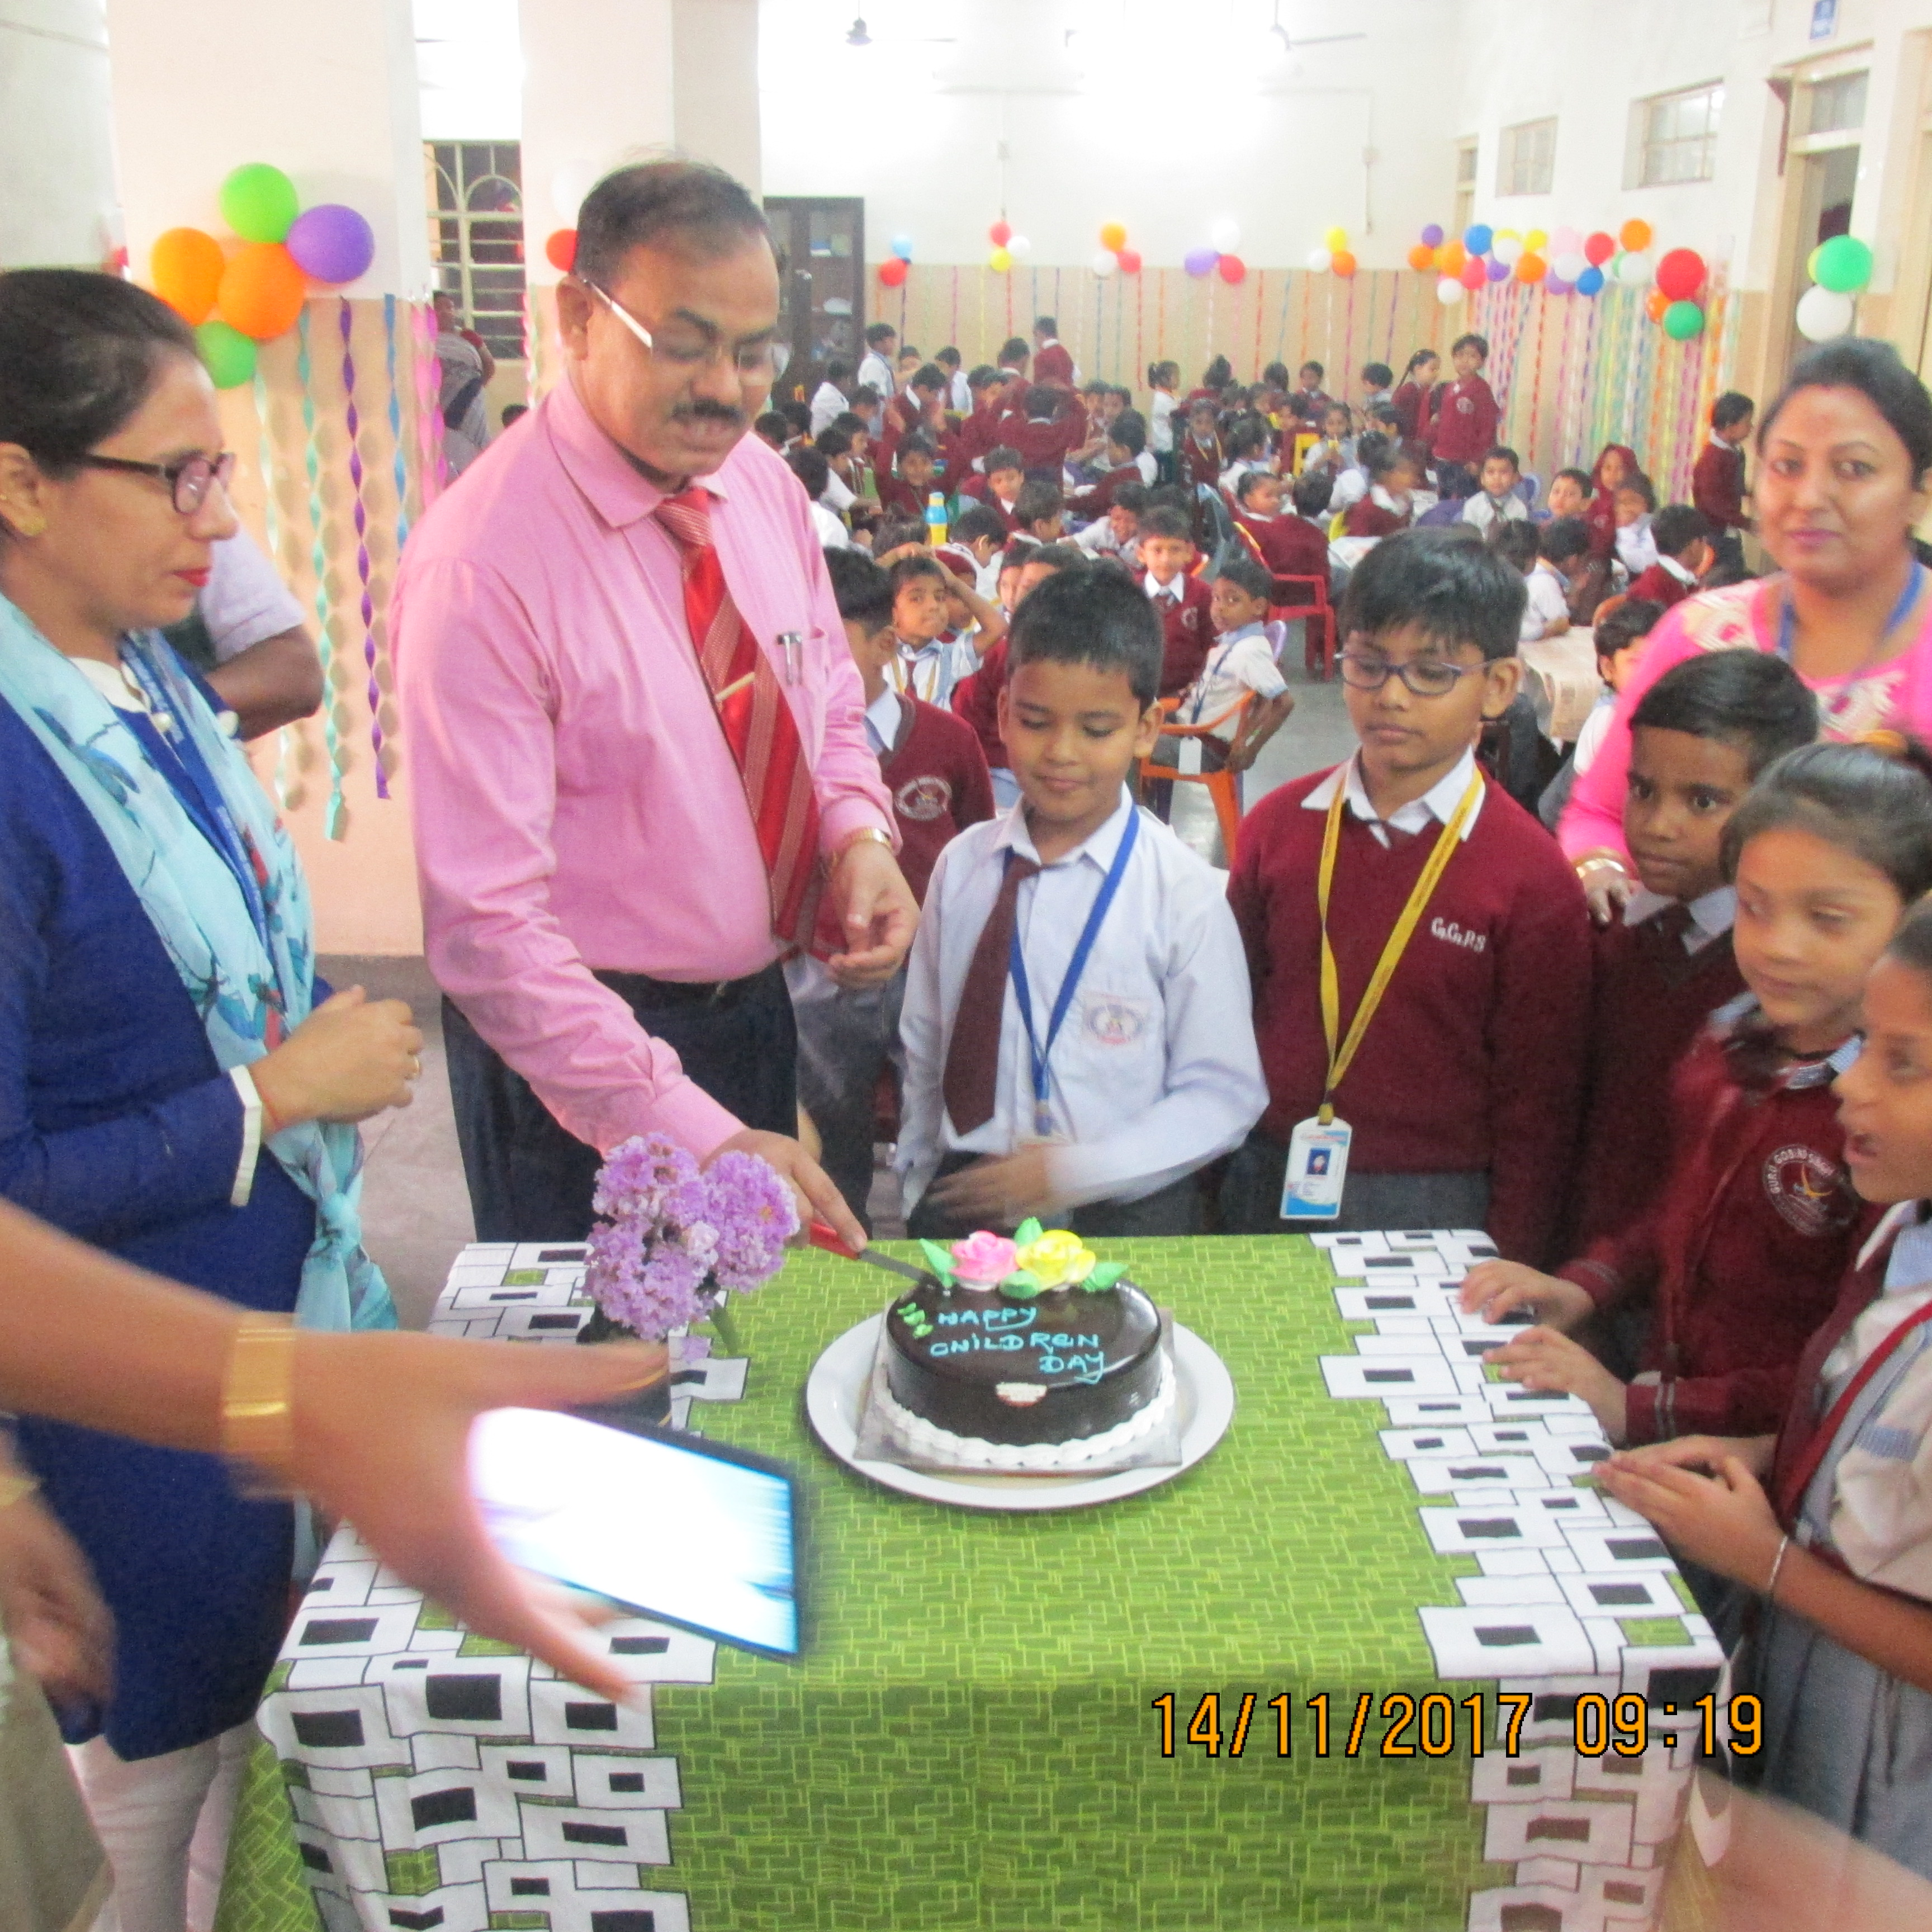 Principal Sir helping the child to cut cake